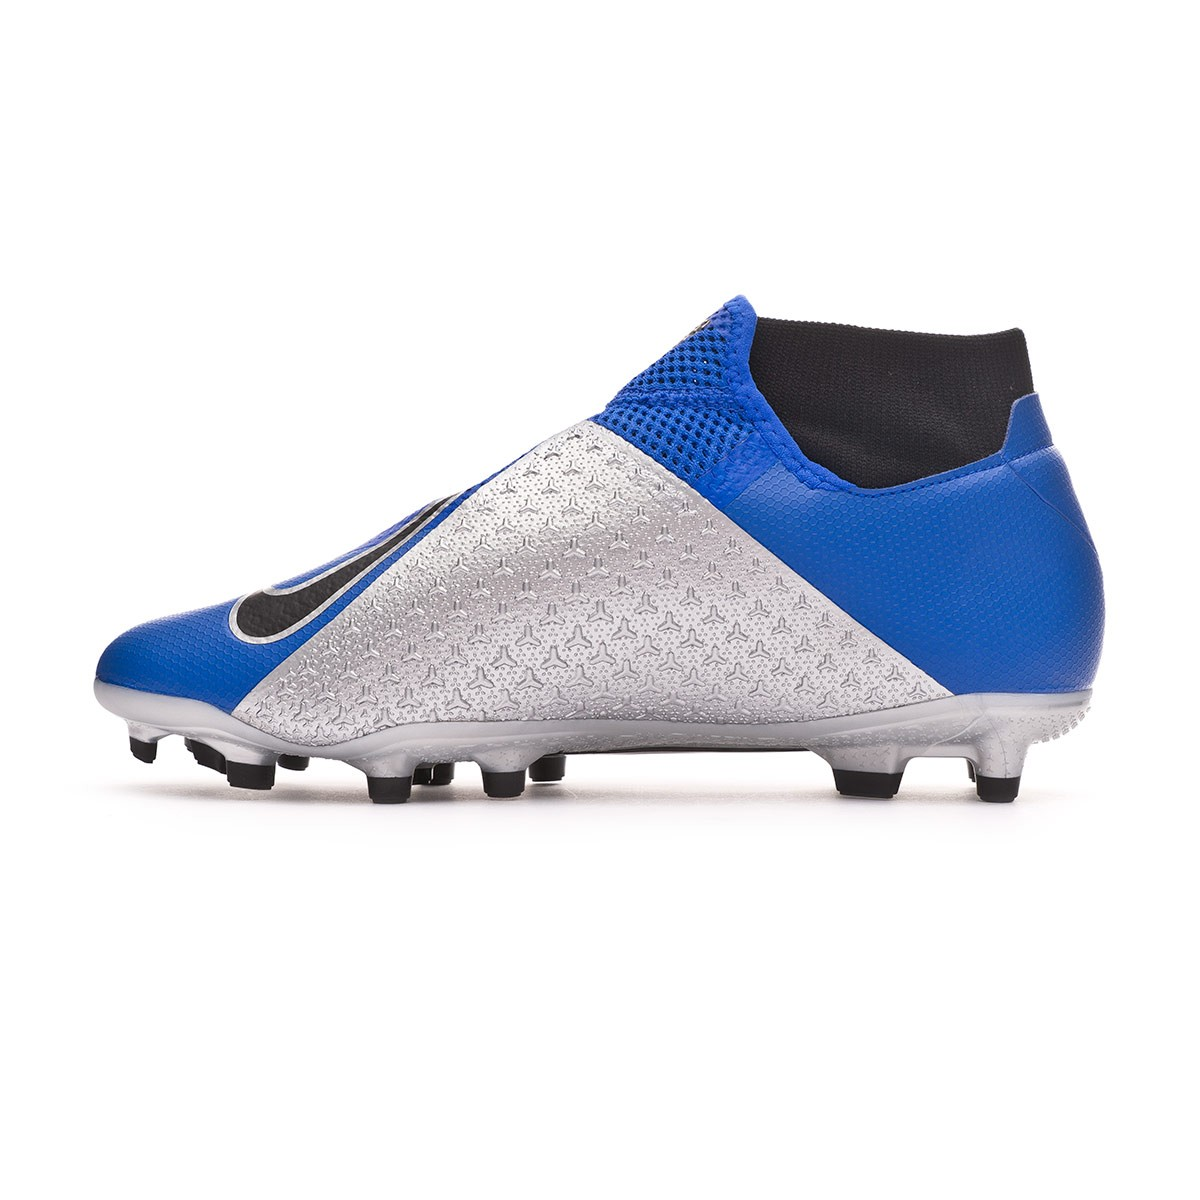 watch d5b3e 7ba01 Chaussure de foot Nike Phantom Vision Academy DF FG MG Racer blue-Black -  Boutique de football Fútbol Emotion